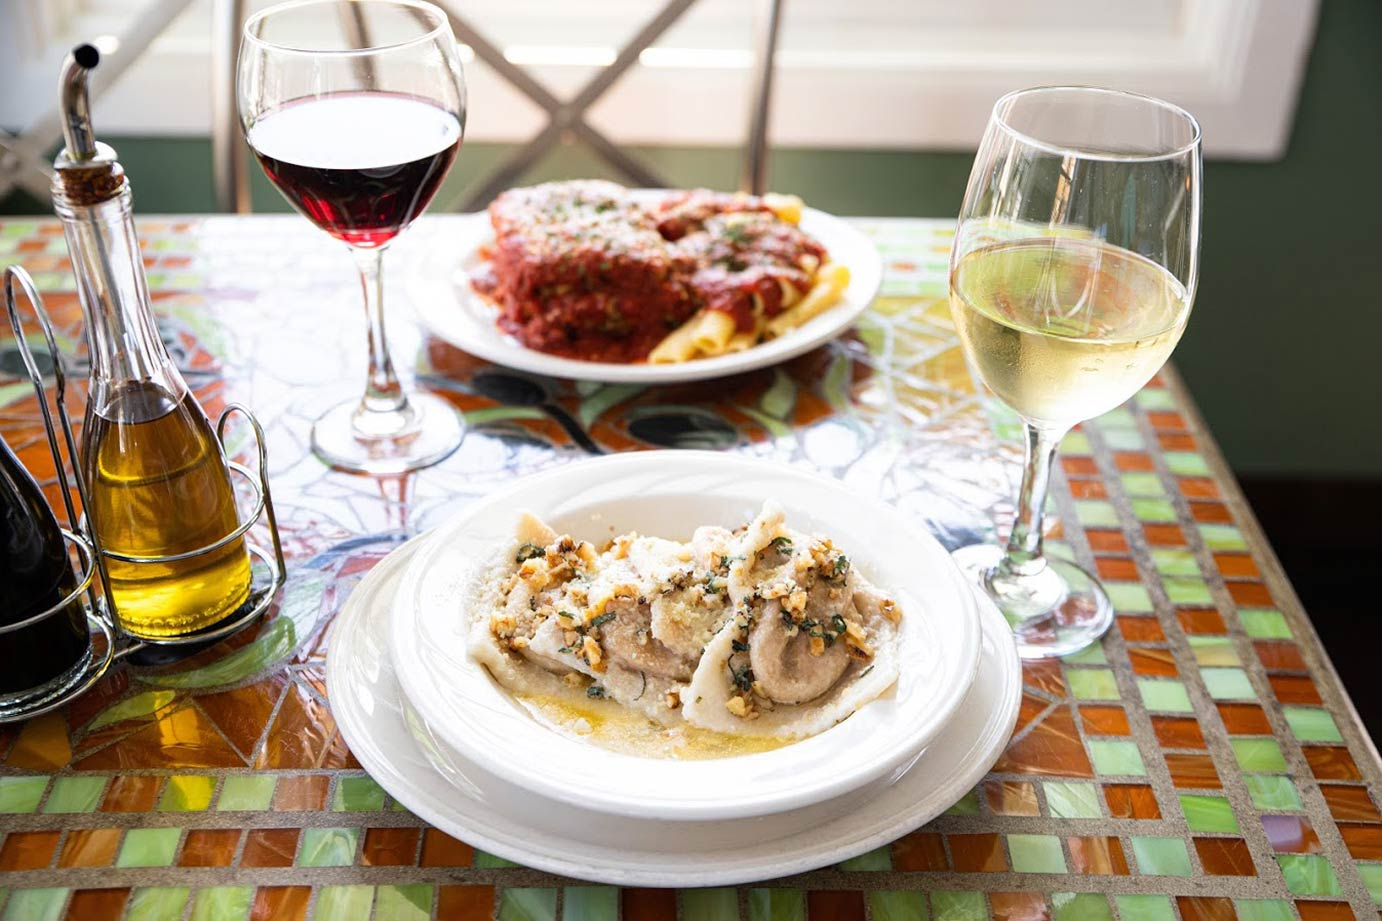 Two Italian meals with wine